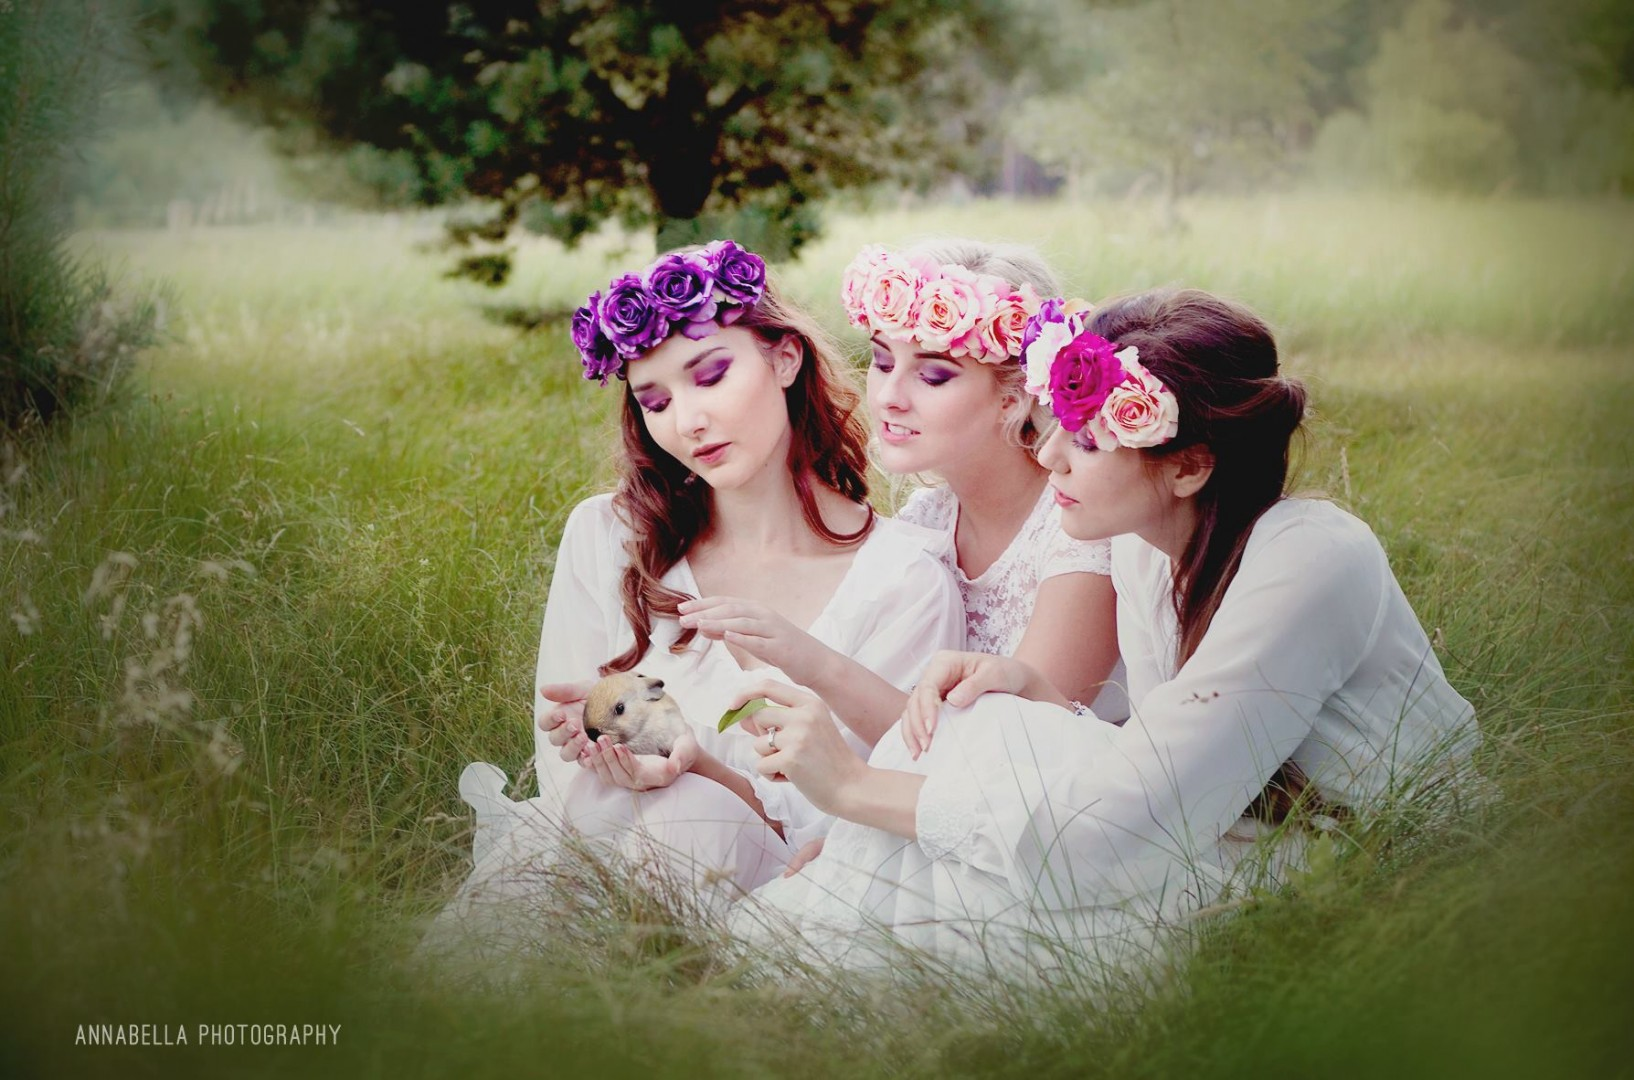 Modeling the Rouge Pony Summer 2014 Flower Crown Collection as Woodland Fairies<br /> Photographer: Annabella Photography<br /> MUA: Kim Ivey<br /> Accessories: Rouge Pony<br /> Models (Right to Left): Bernadette Lemon, Alexandra Coe, Nakita Harden